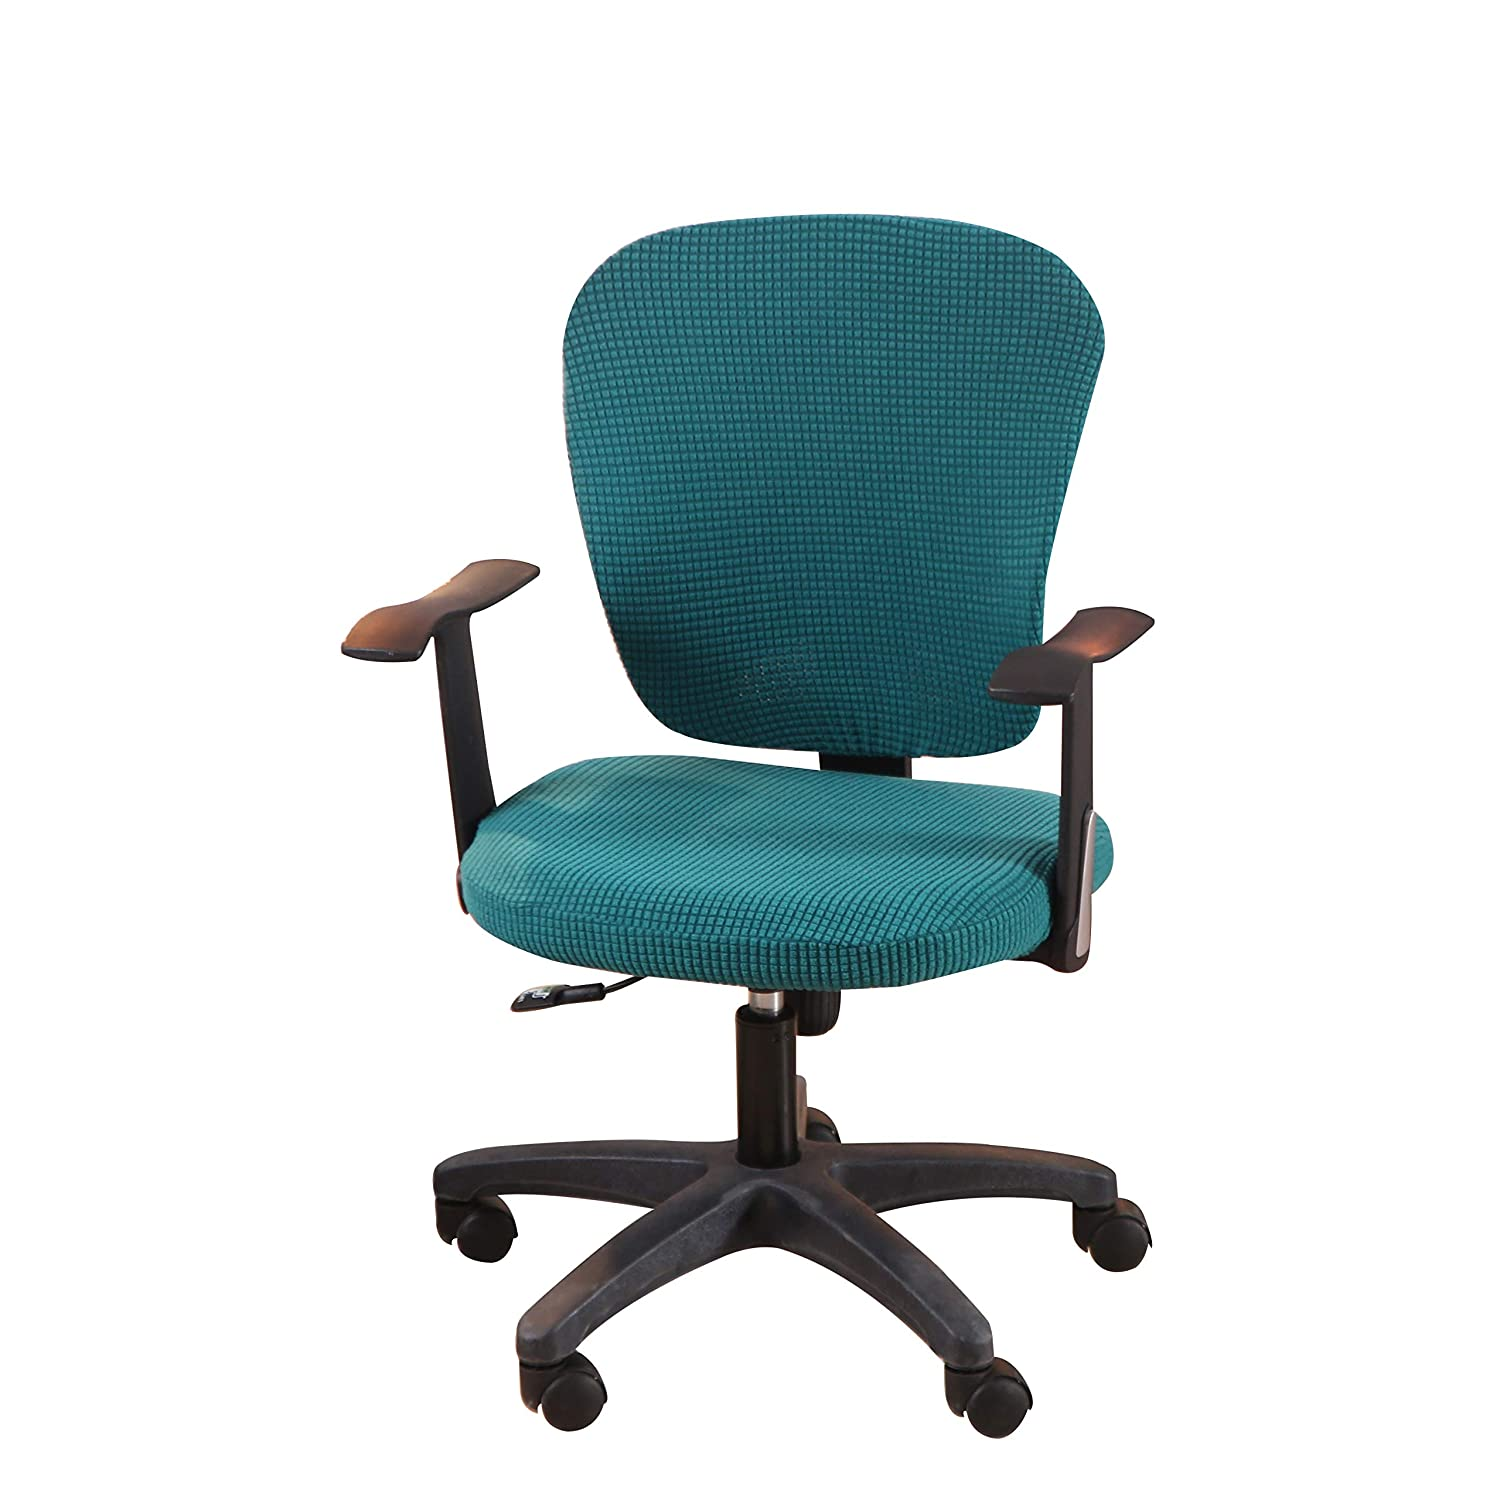 Jinzio Office Chair Cover - Split Protective & Stretchable Solid Corn Velour Universal Computer Desk Task Chair Chair Covers Stretch Rotating Chair Slipcover, Peacock Green